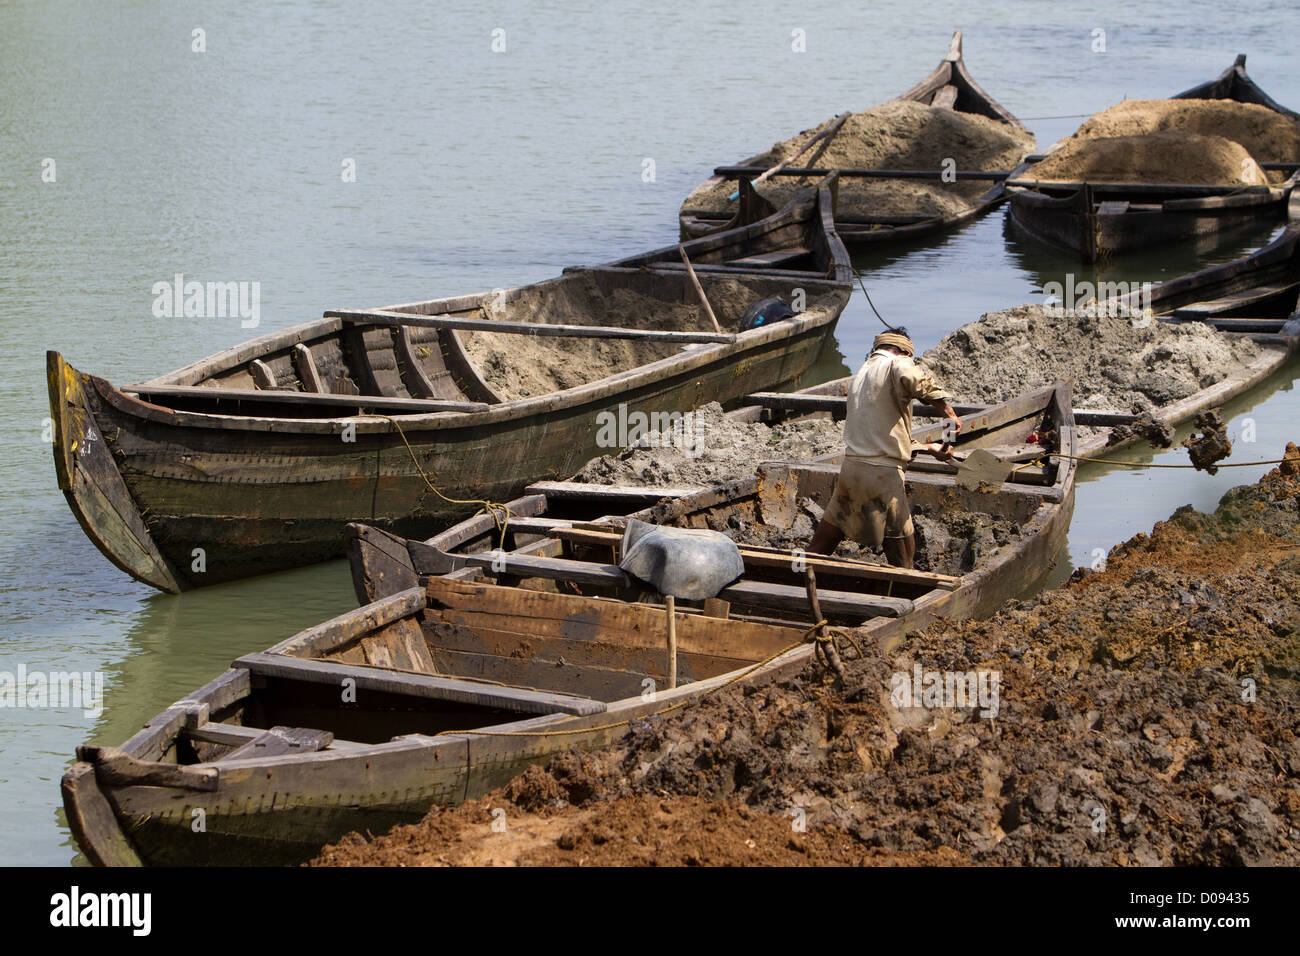 SAND MINERS IN BACKWATERS ZONE WHERE SAND IS EXTRACTED FOR USE AS FERTILIZER OR CONSTRUCTION MATERIAL NEDUNGOLAM - Stock Image